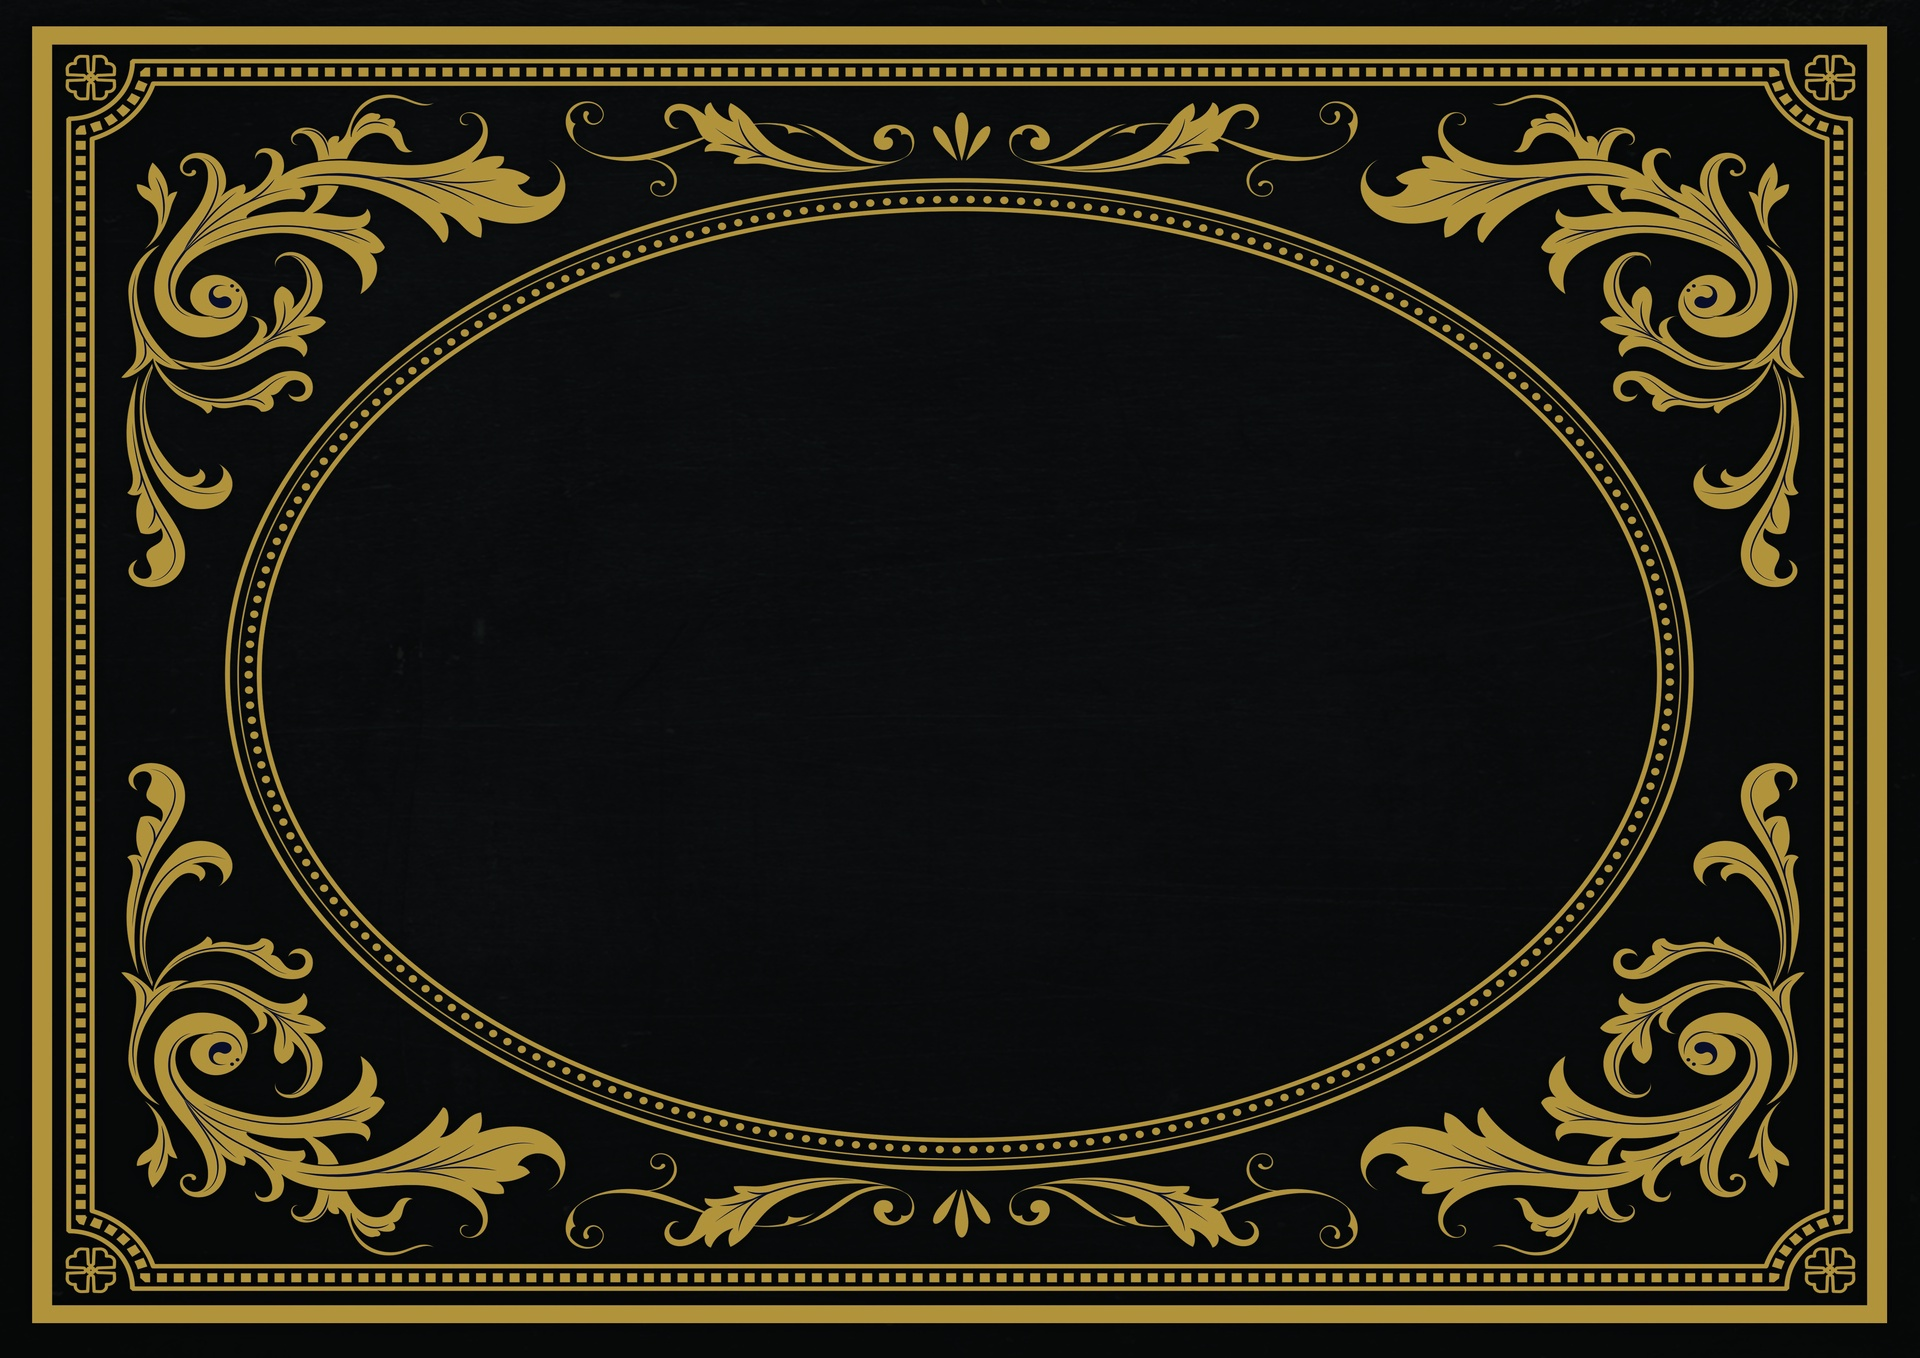 Paper Placemats - Elegance (Rect) 420mm x 297mm